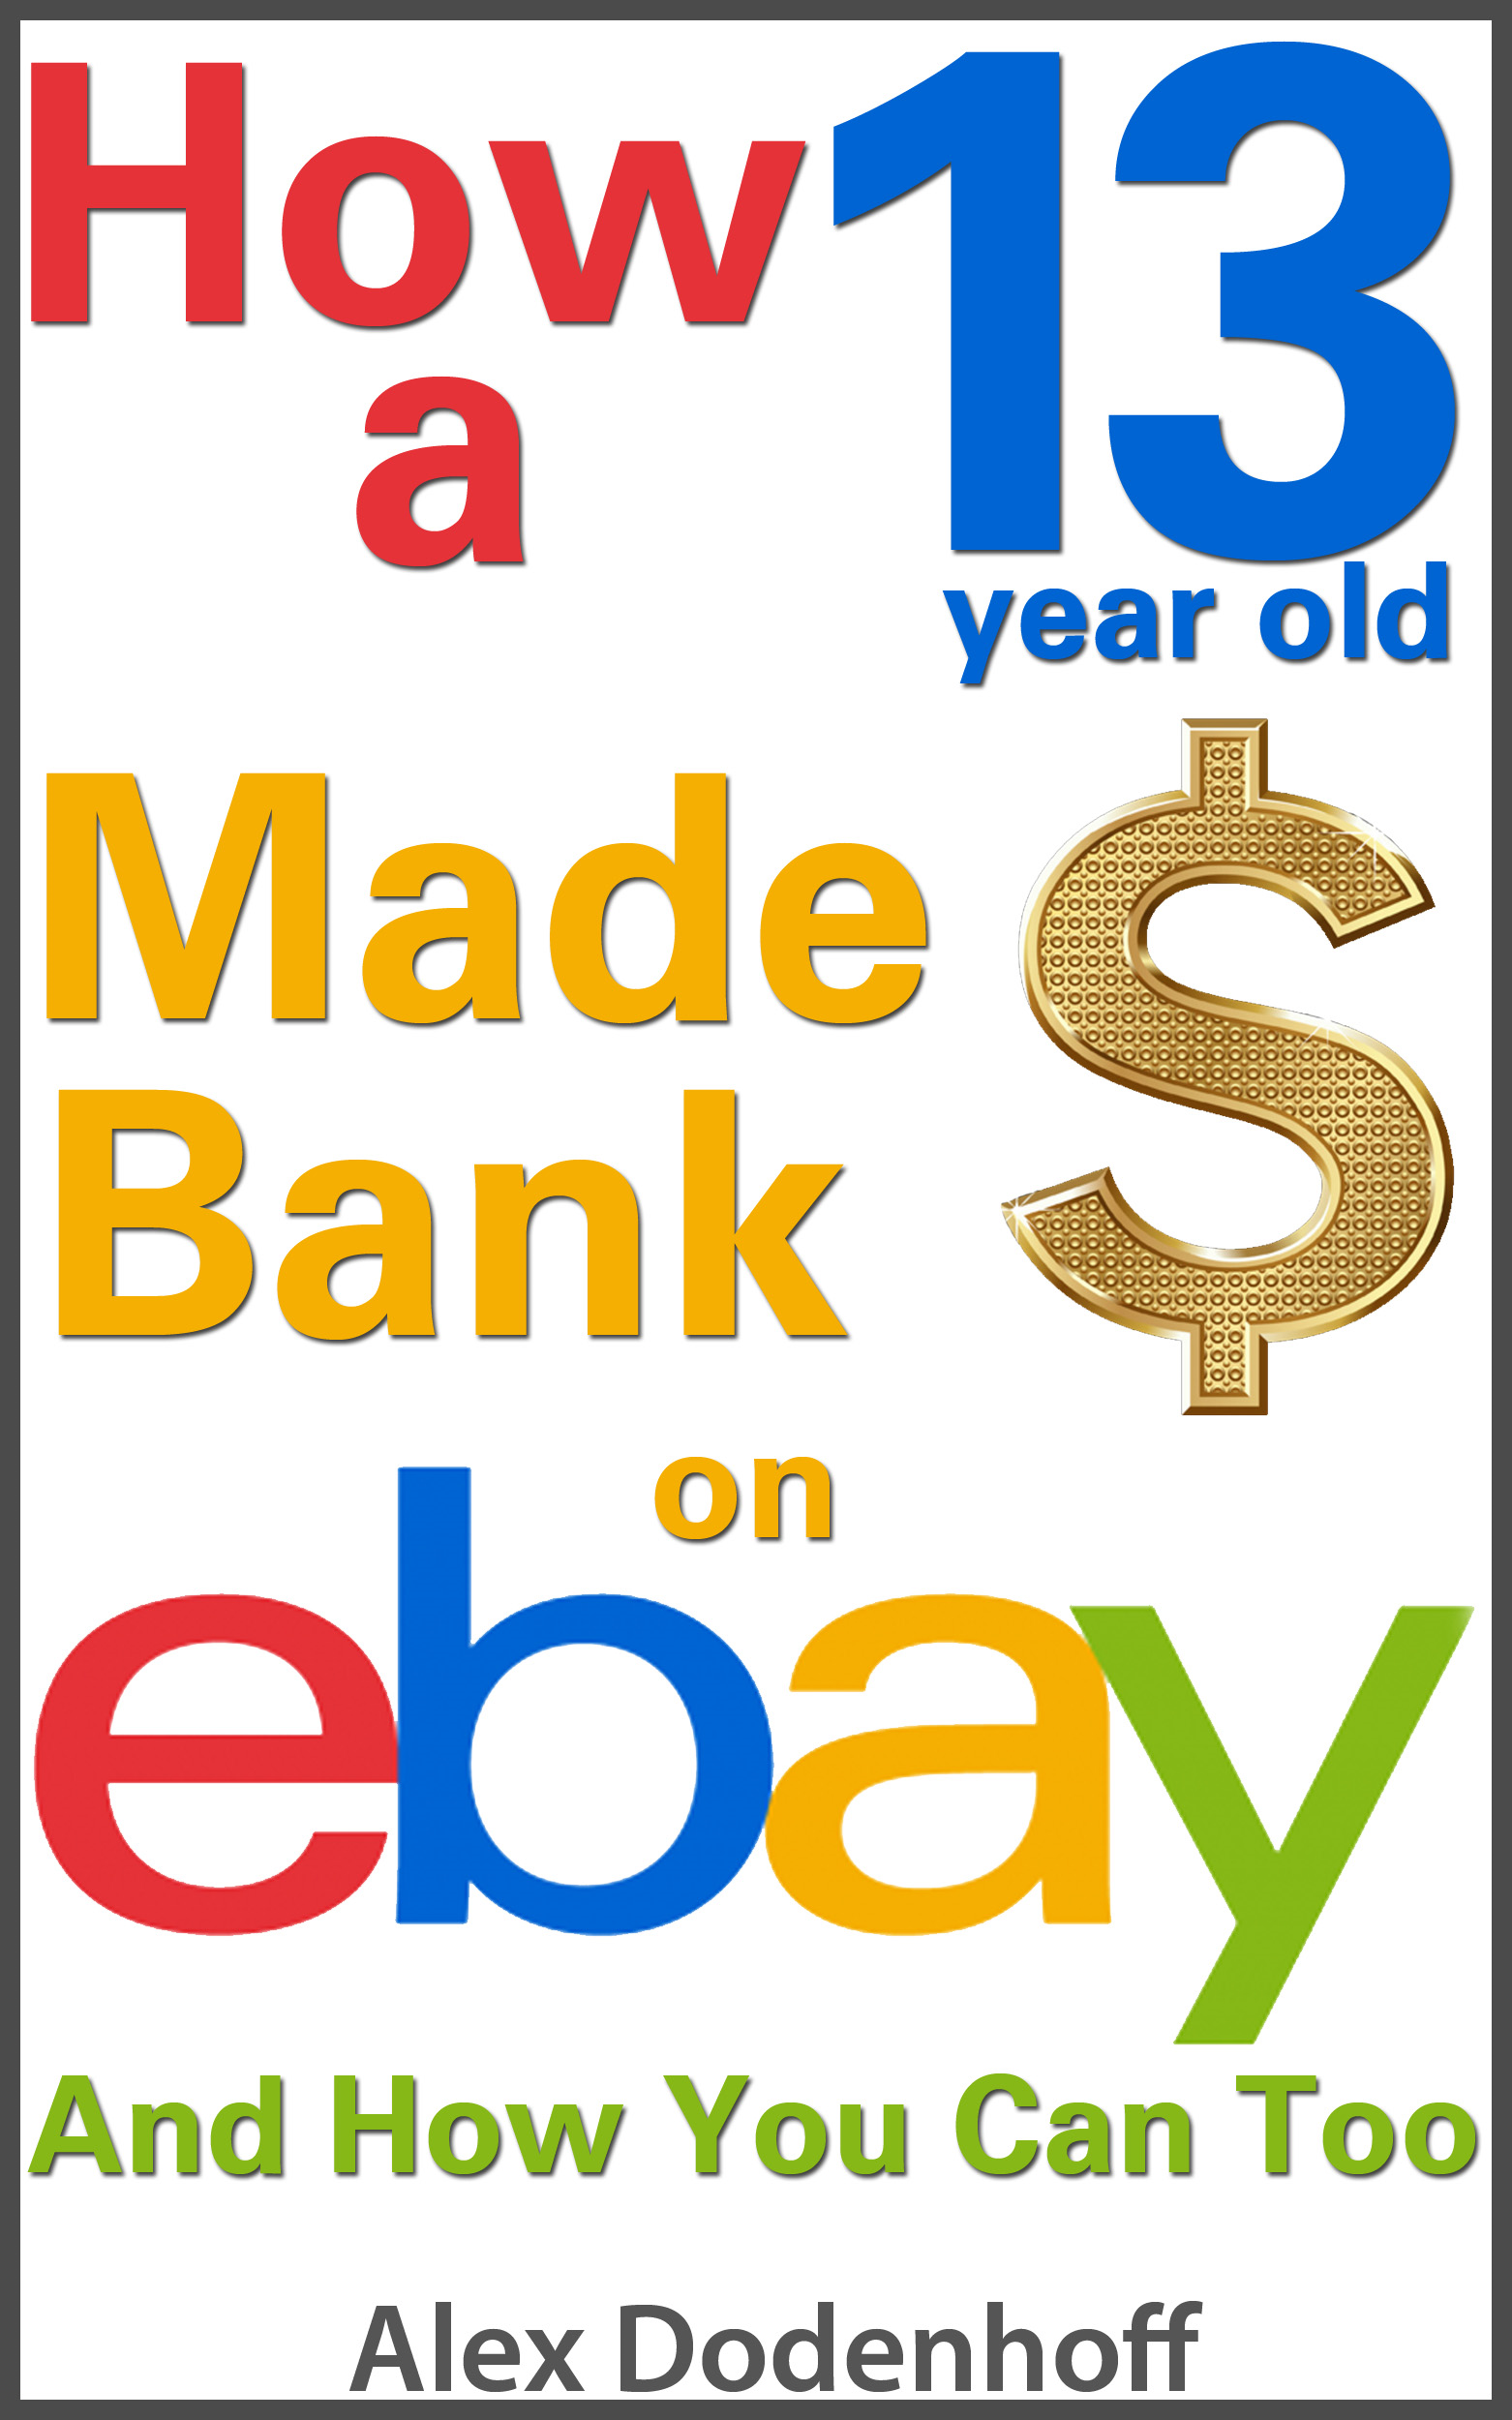 How A 13 Year Old Made Bank On eBay, And How You Can Too